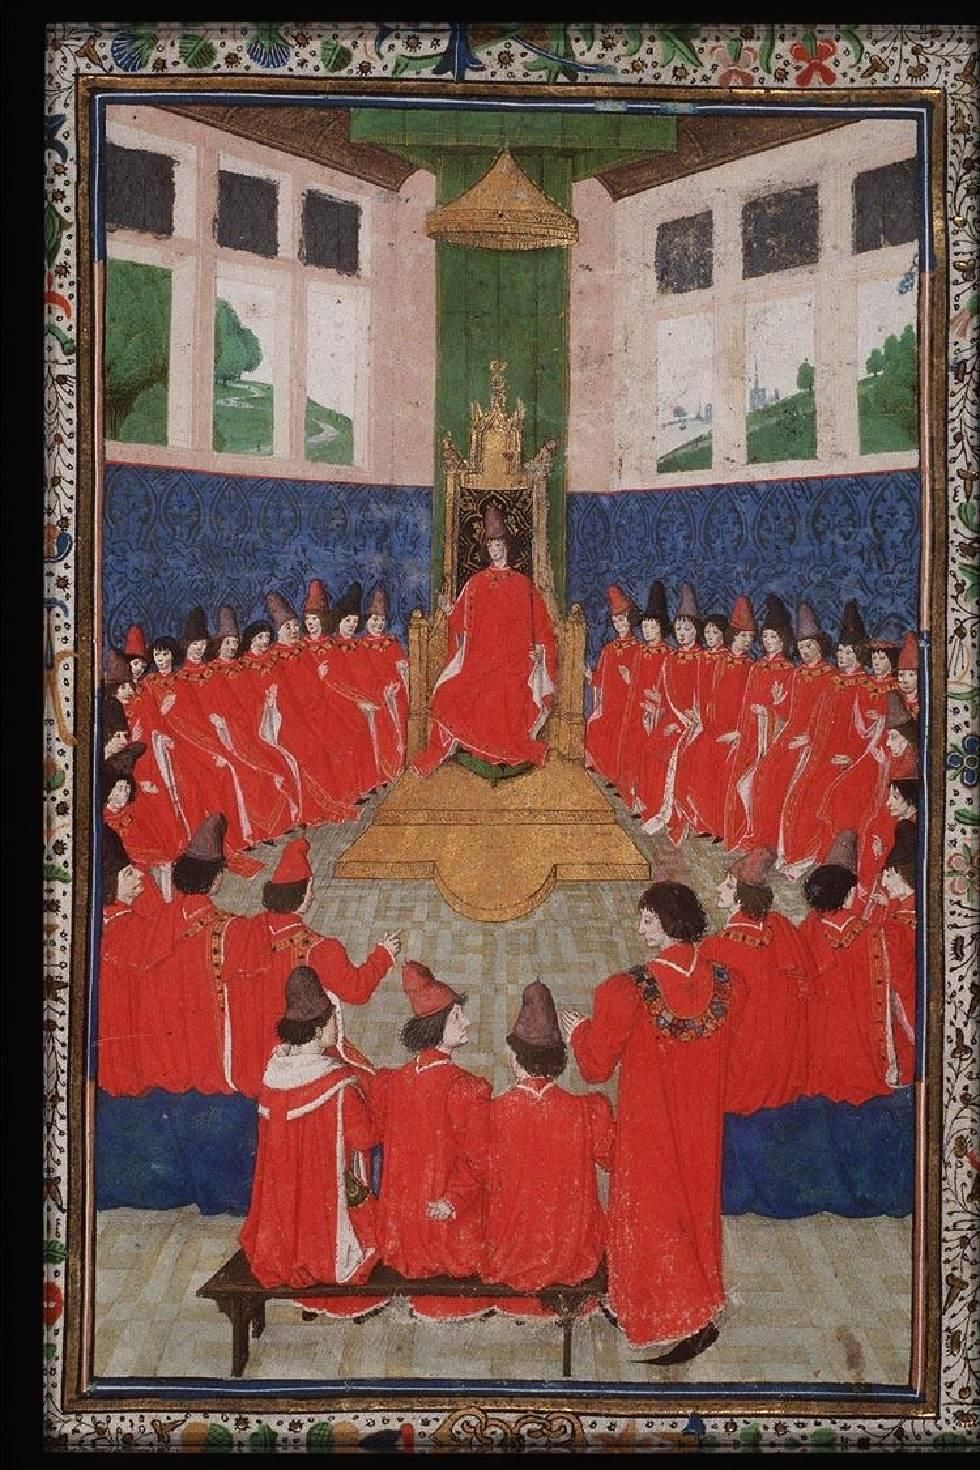 005v Assembly of the Order of the Golden Fleece presided over by Charles the Bold.